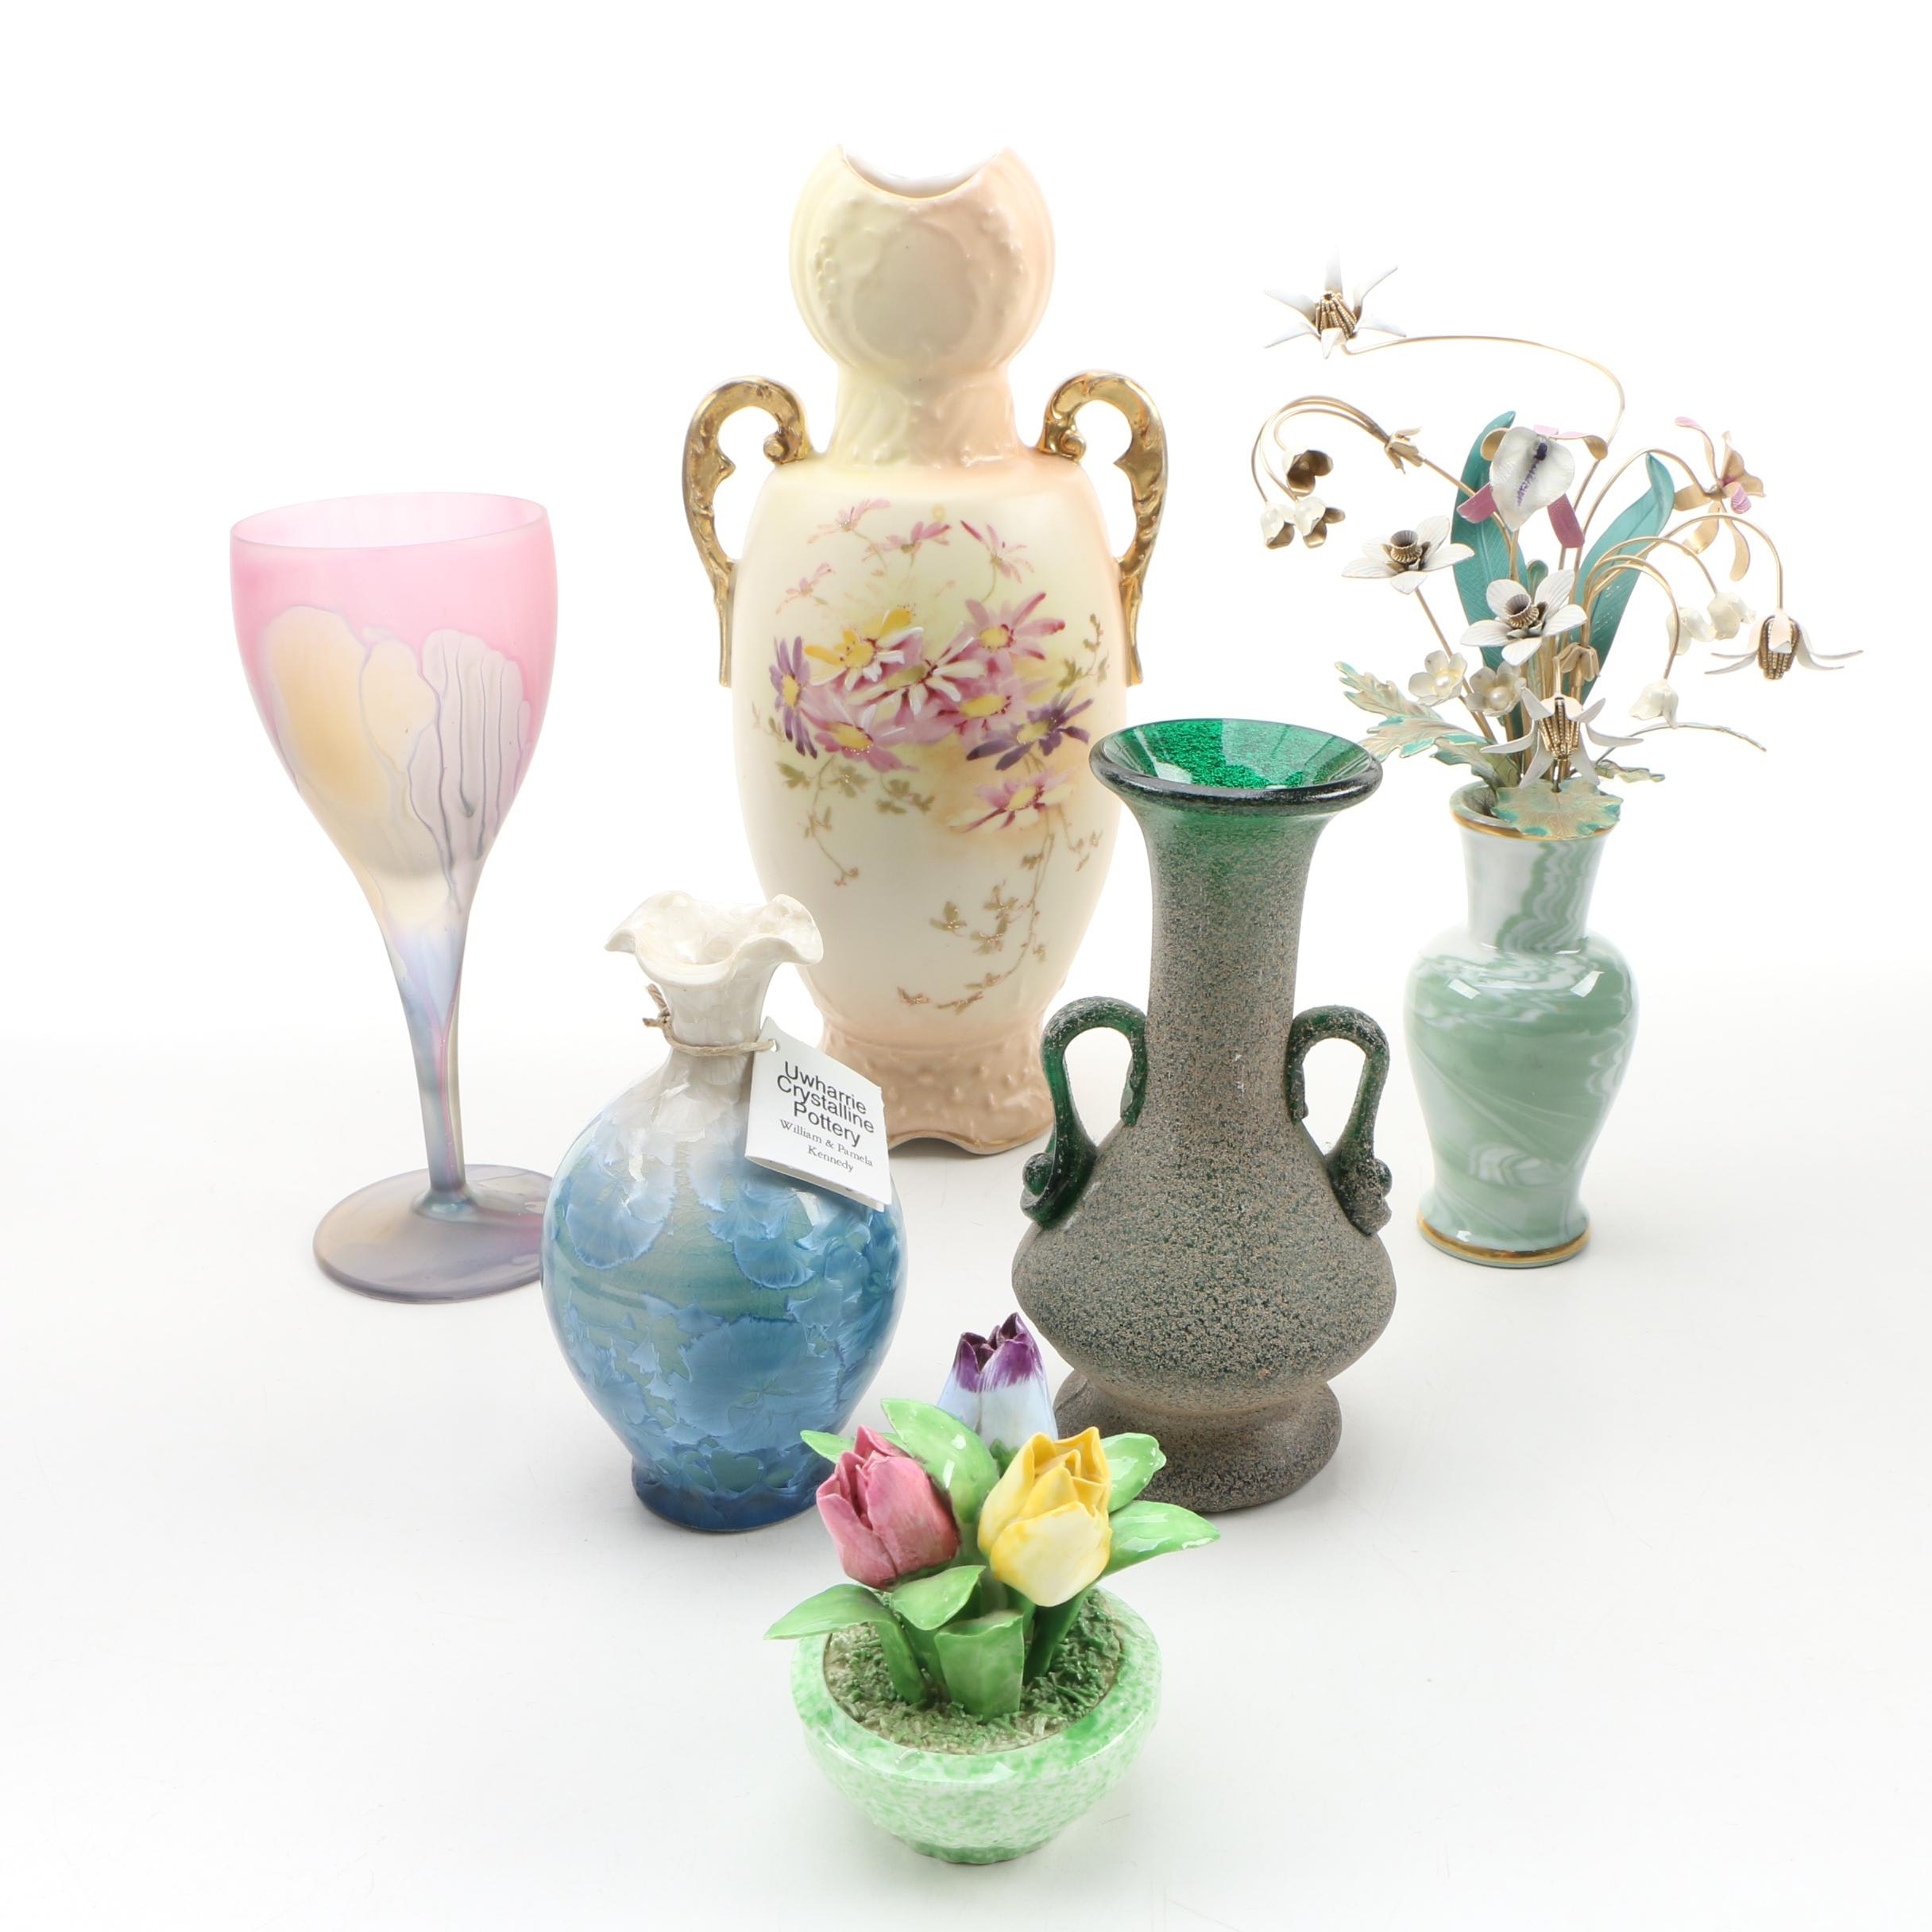 Uwharrie Crystalline Pottery Bud Vase with other Décor